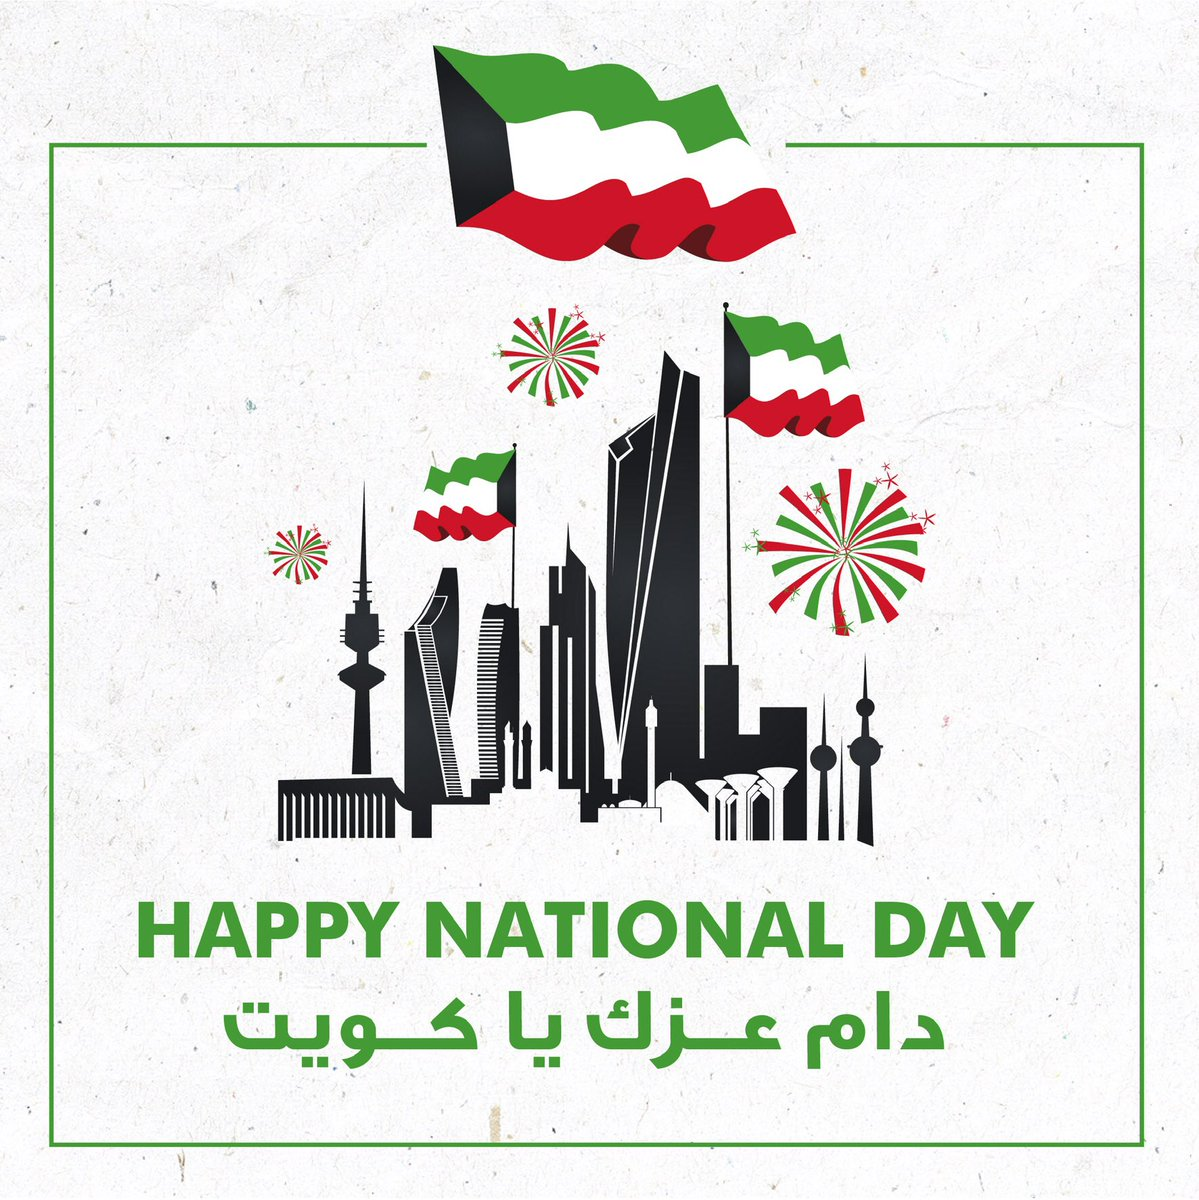 Happy National Day 💚  دام عزك يا كويت   #LoveRegardless #ZaatarwZeitKw #Zaatarwzeit #nationalday #kuwait #anniversary  #offer #throwback #fun #delicious #tasty #yummy #instafood #tb #dinner #friends #gathering #kuwaiti #q8